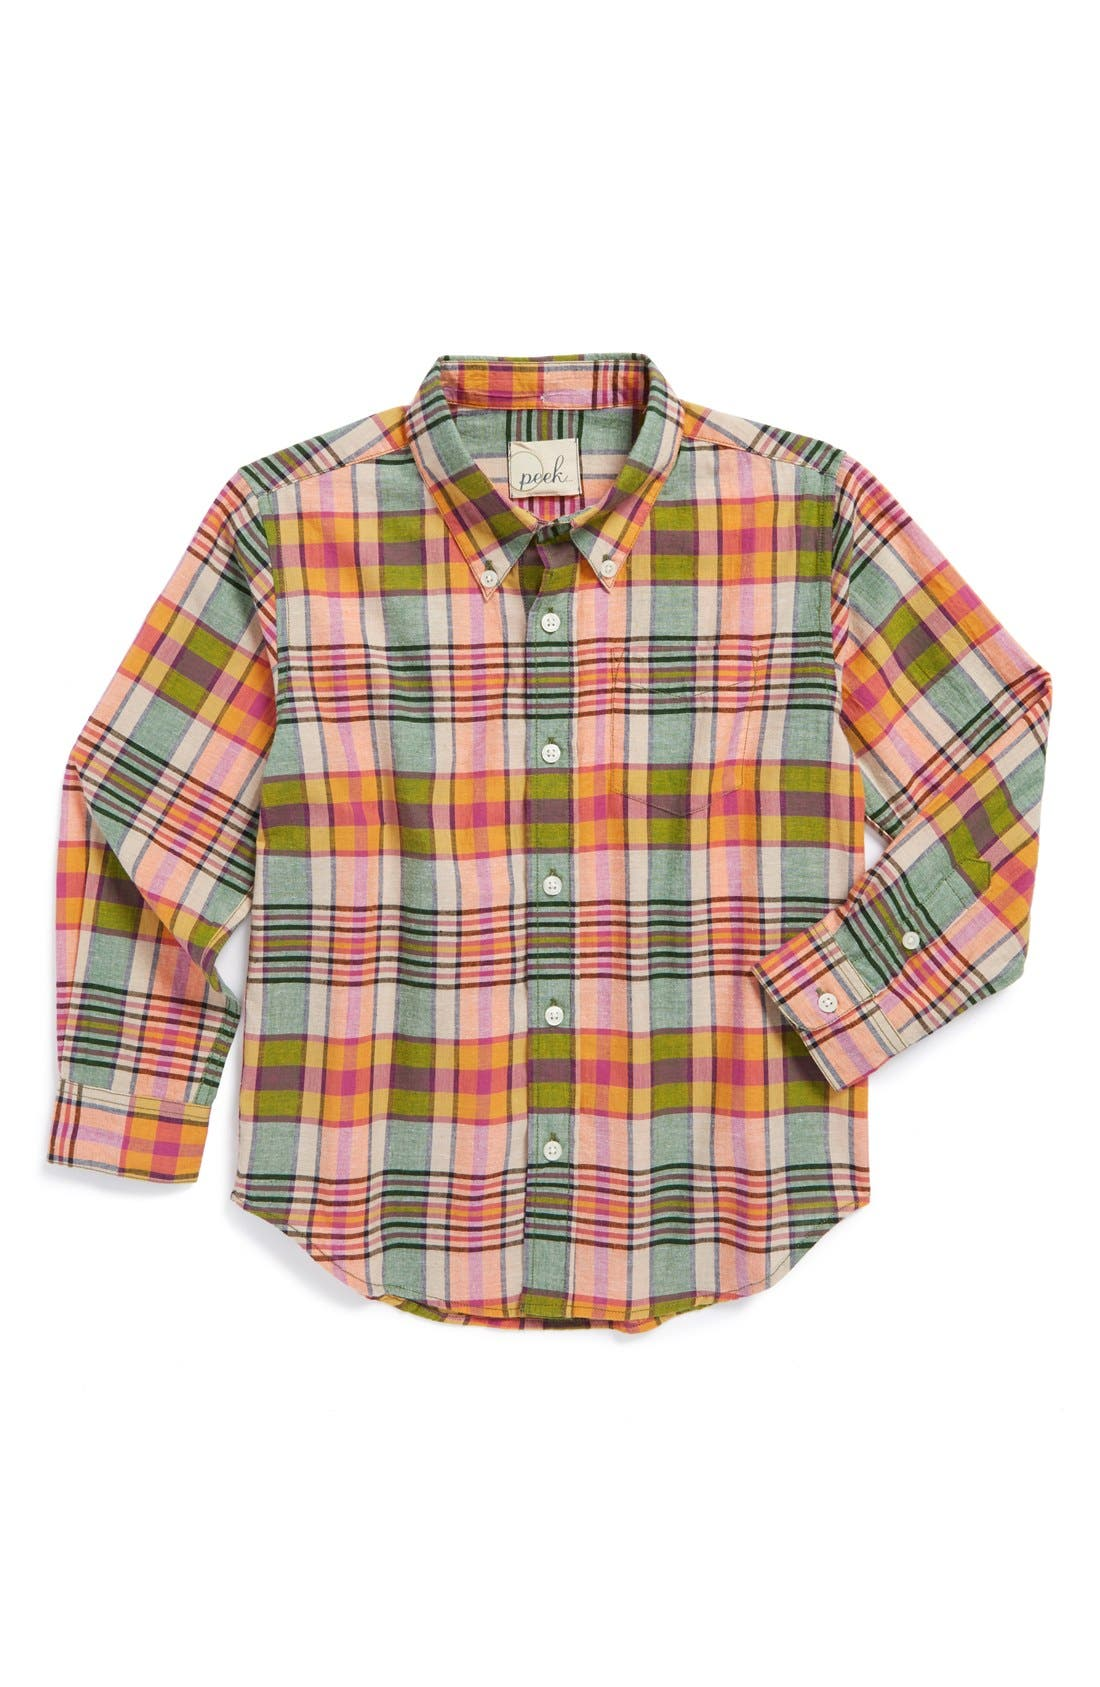 Alternate Image 1 Selected - Peek 'Catamaran Bright' Woven Plaid Button Down Shirt (Toddler Boys, Little Boys & Big Boys)